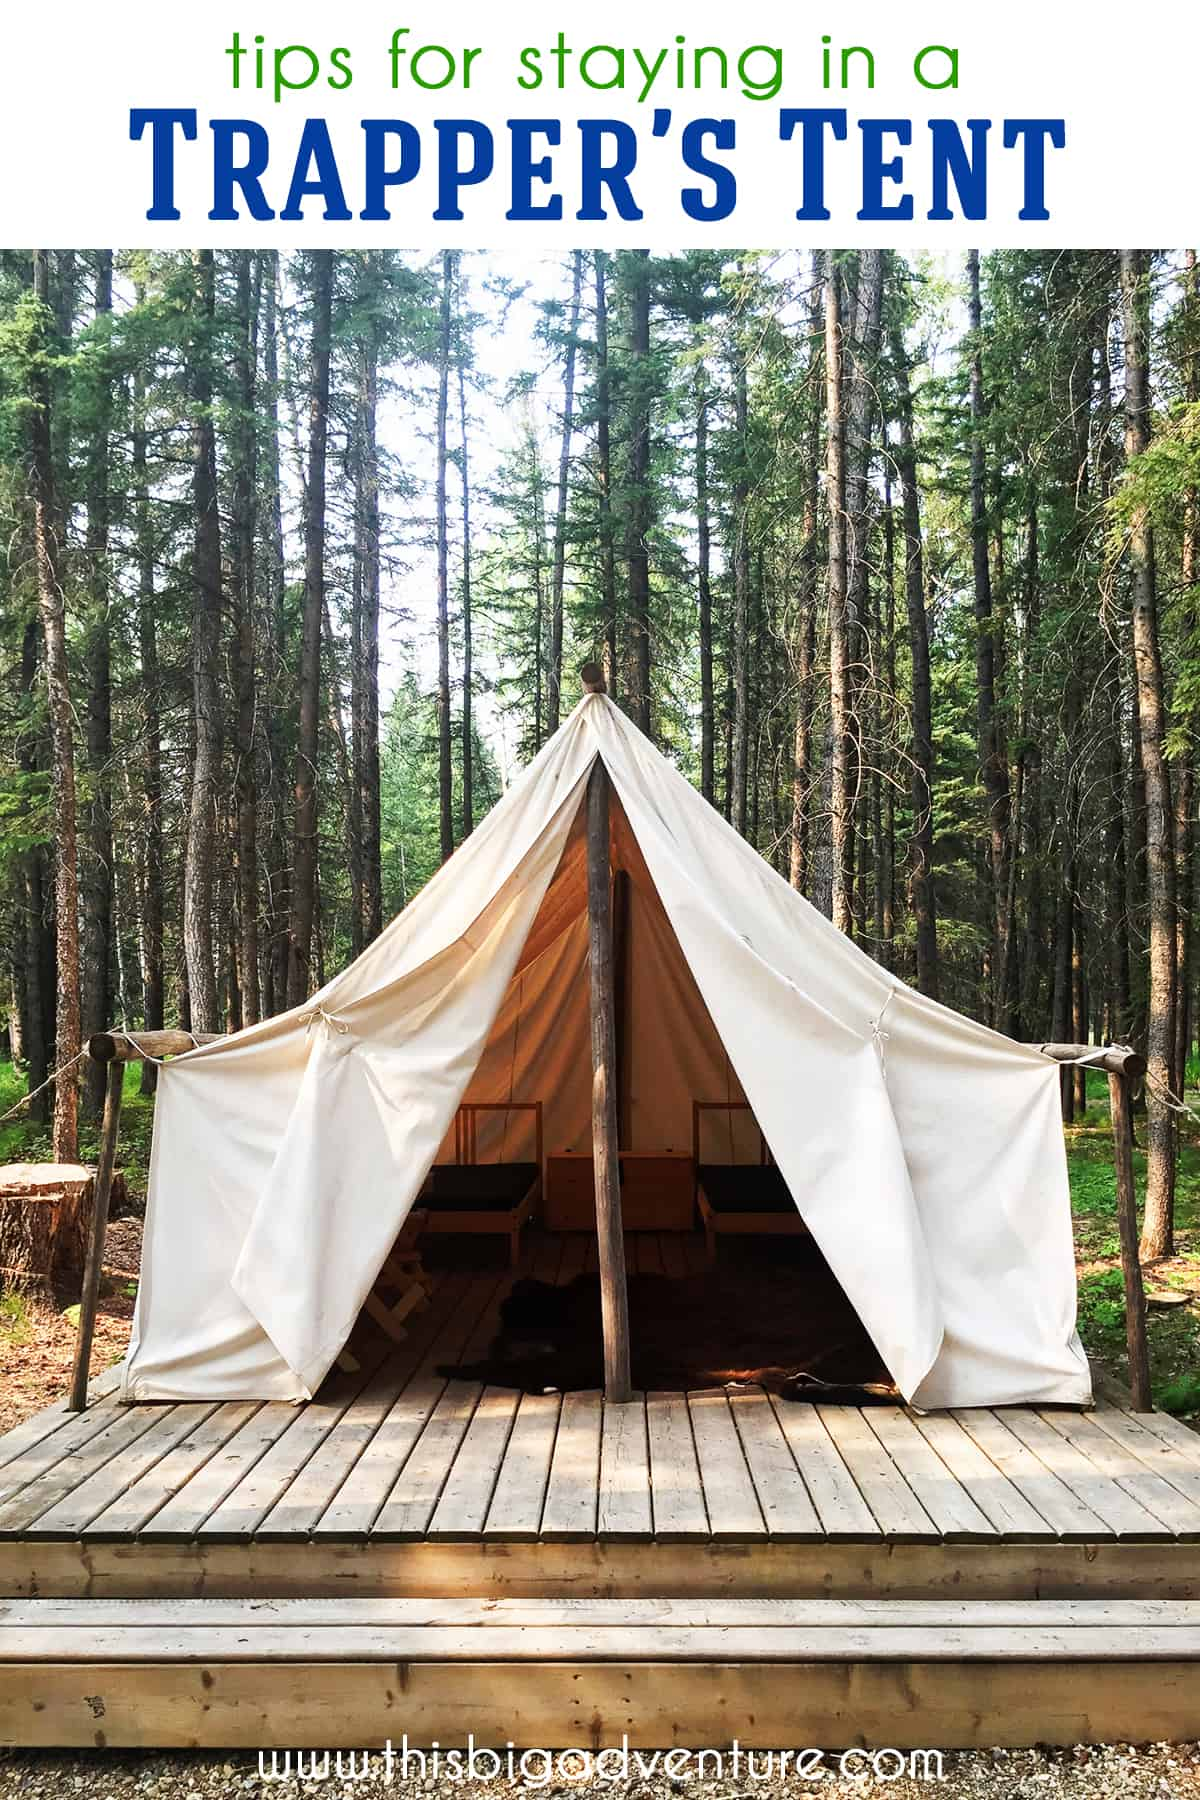 Tips for Staying in a Trapper's Tent